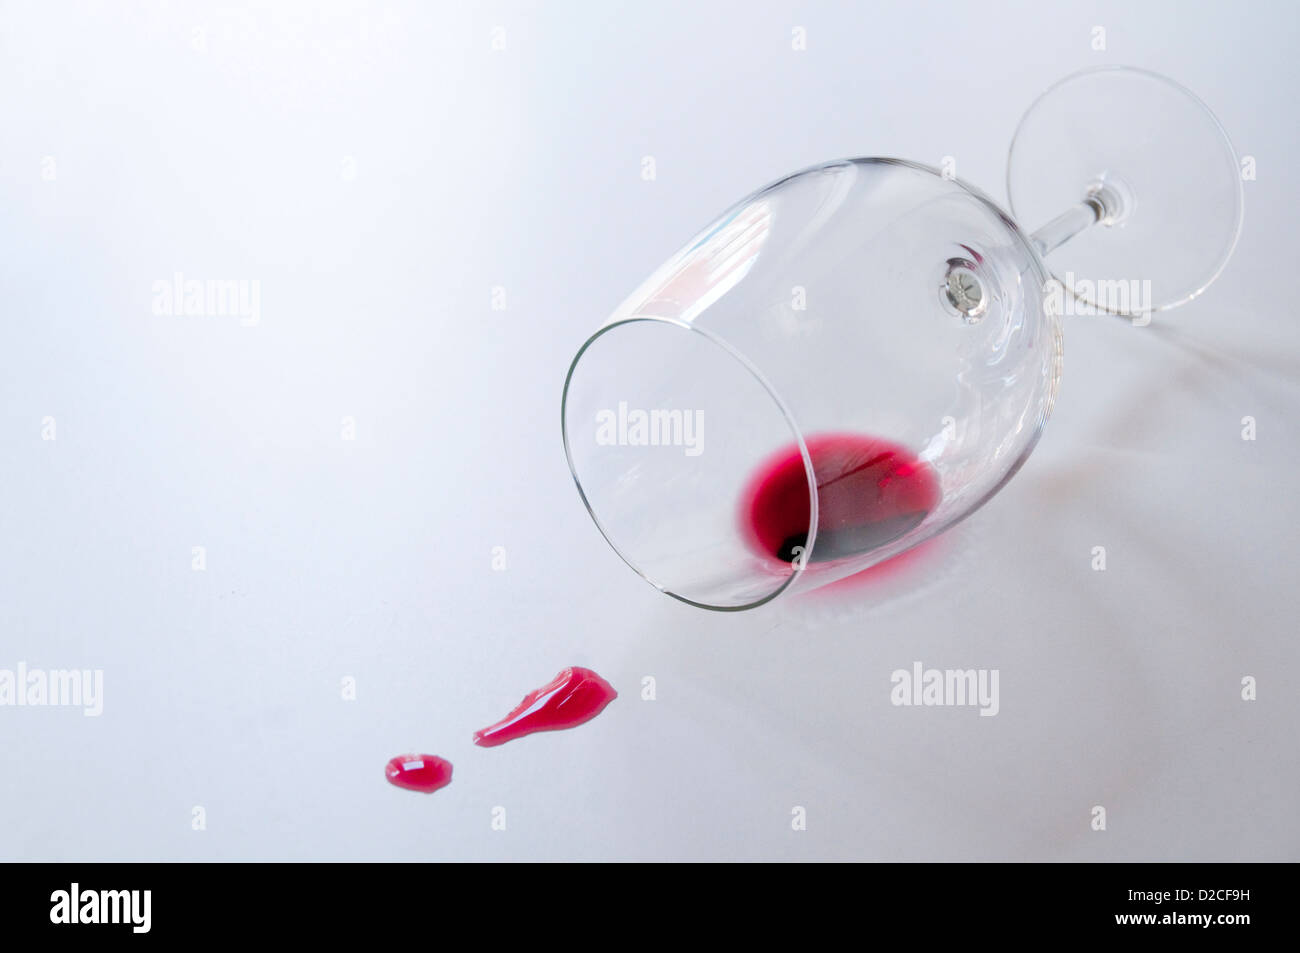 Knocked over glass and split wine. Stock Photo